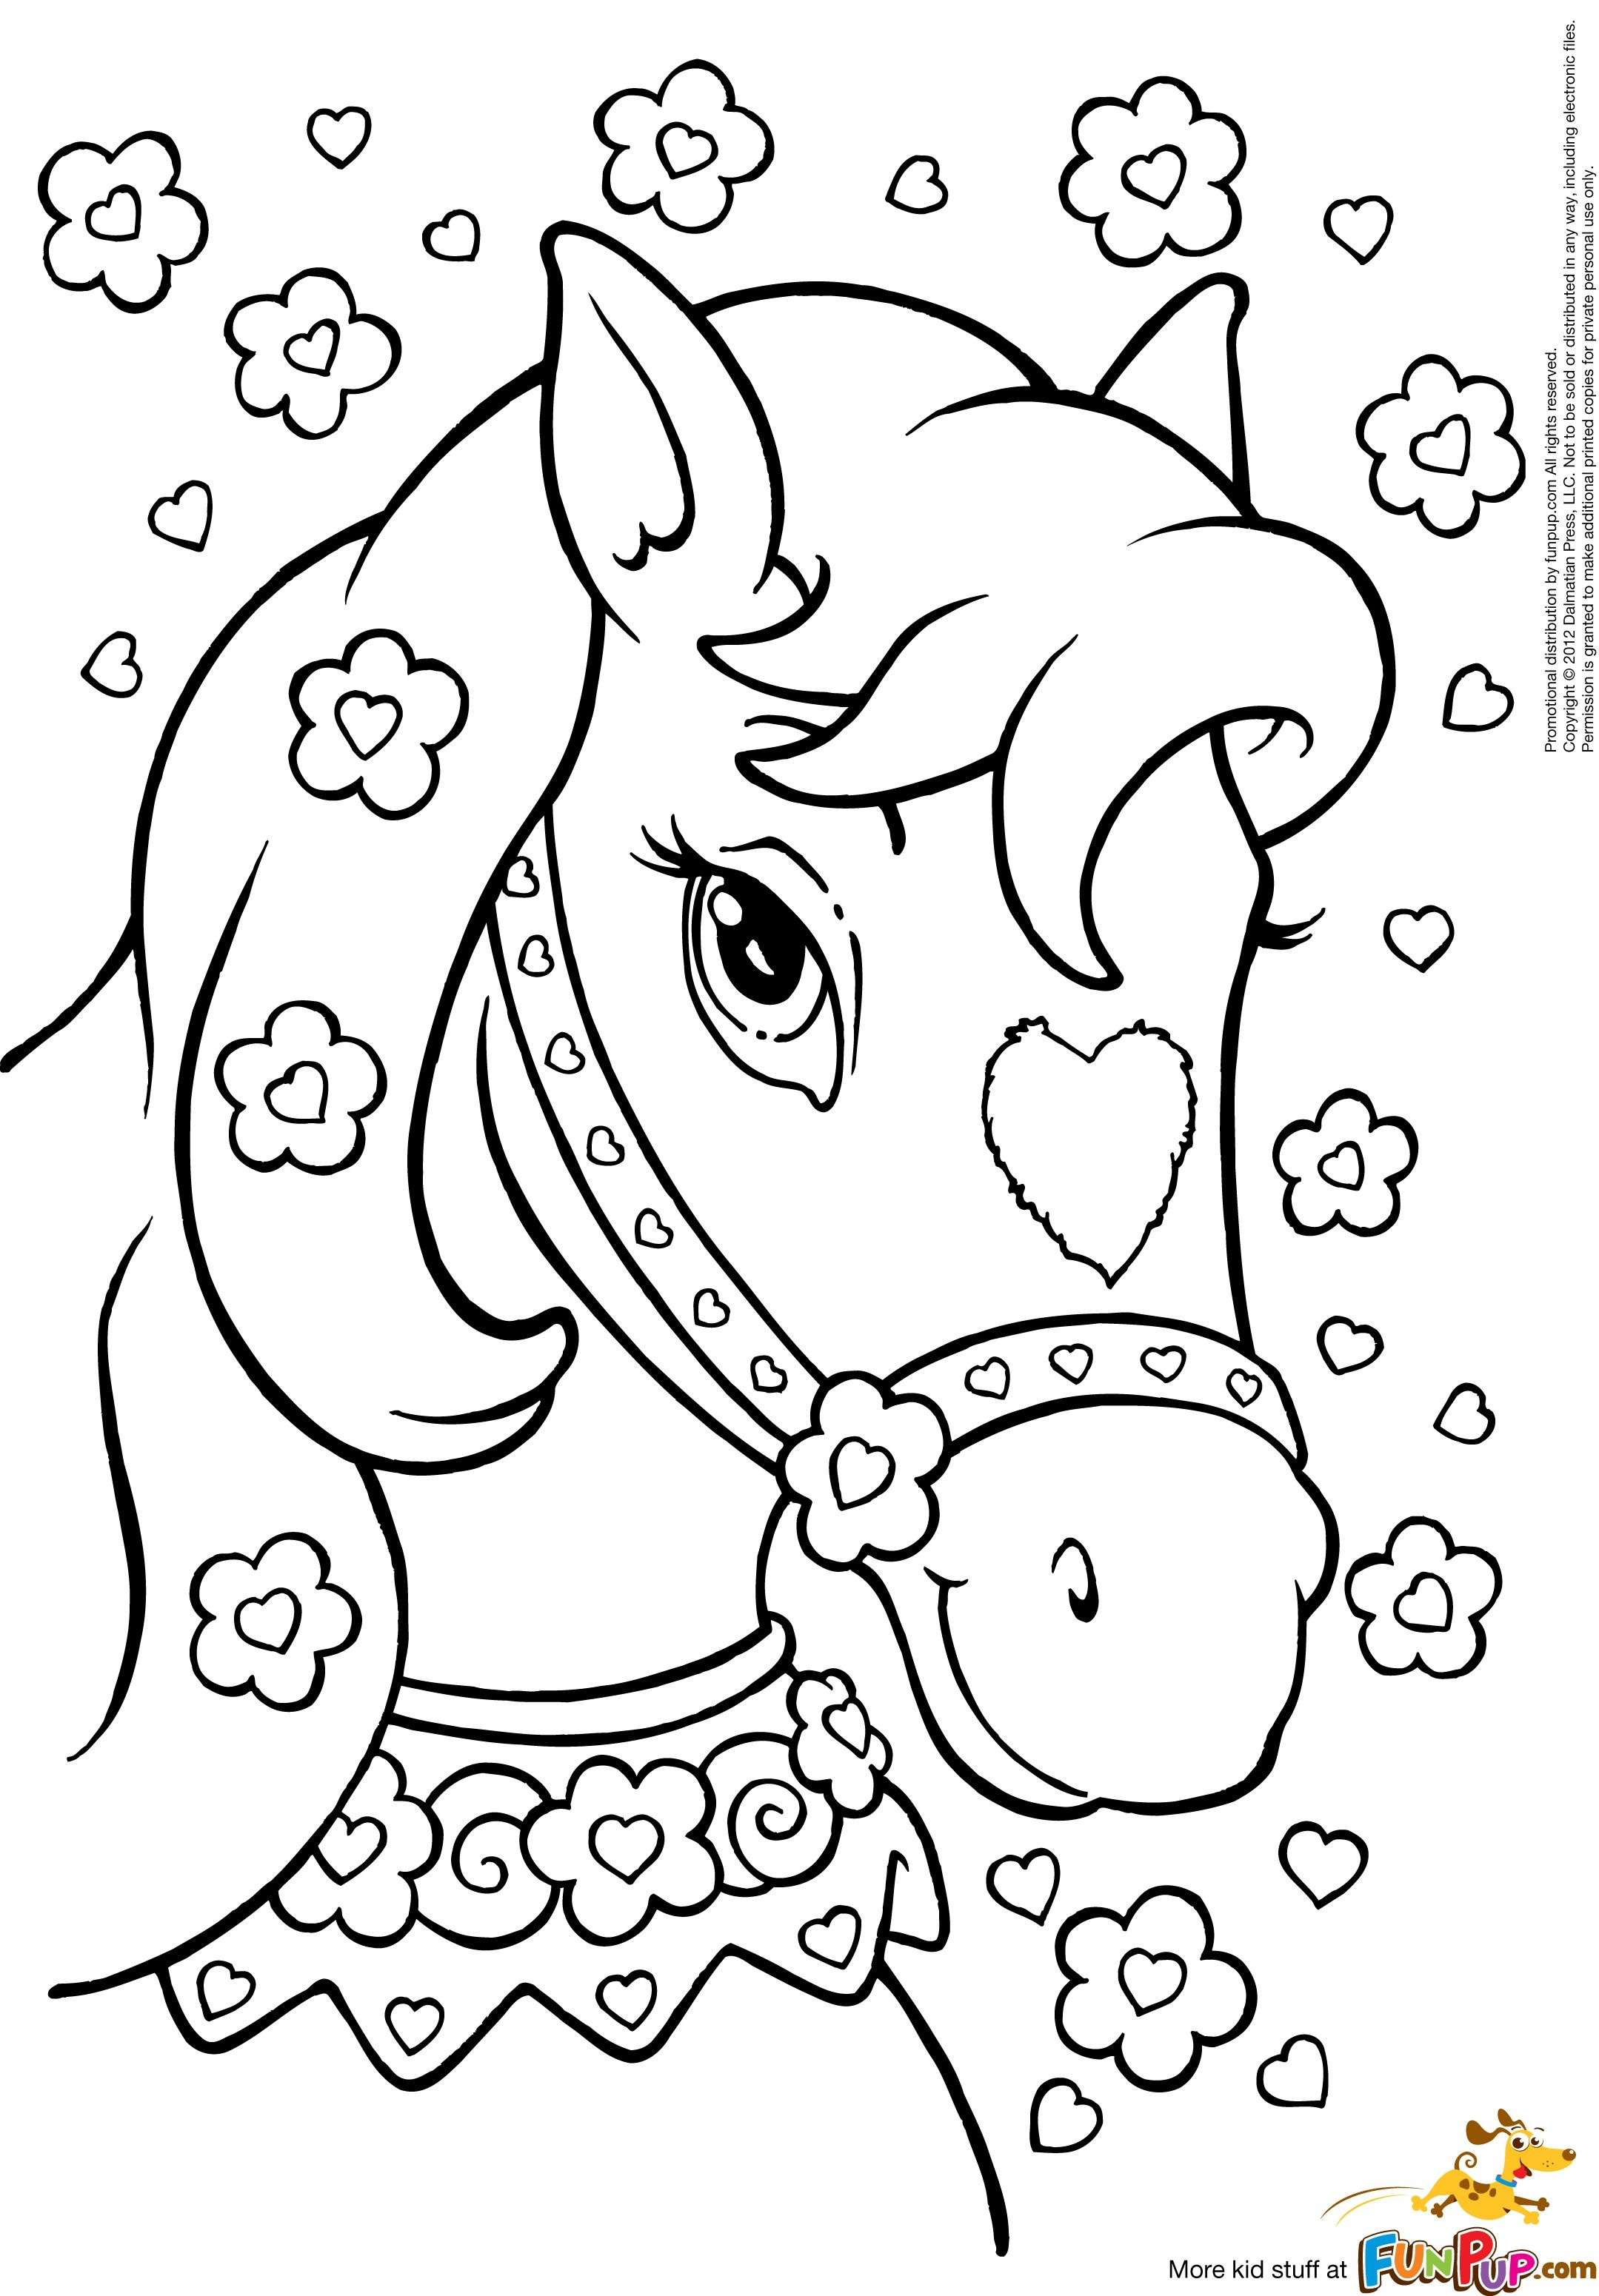 2159x3101 The Best Princess Coloring Pages To And Print For Picture Children